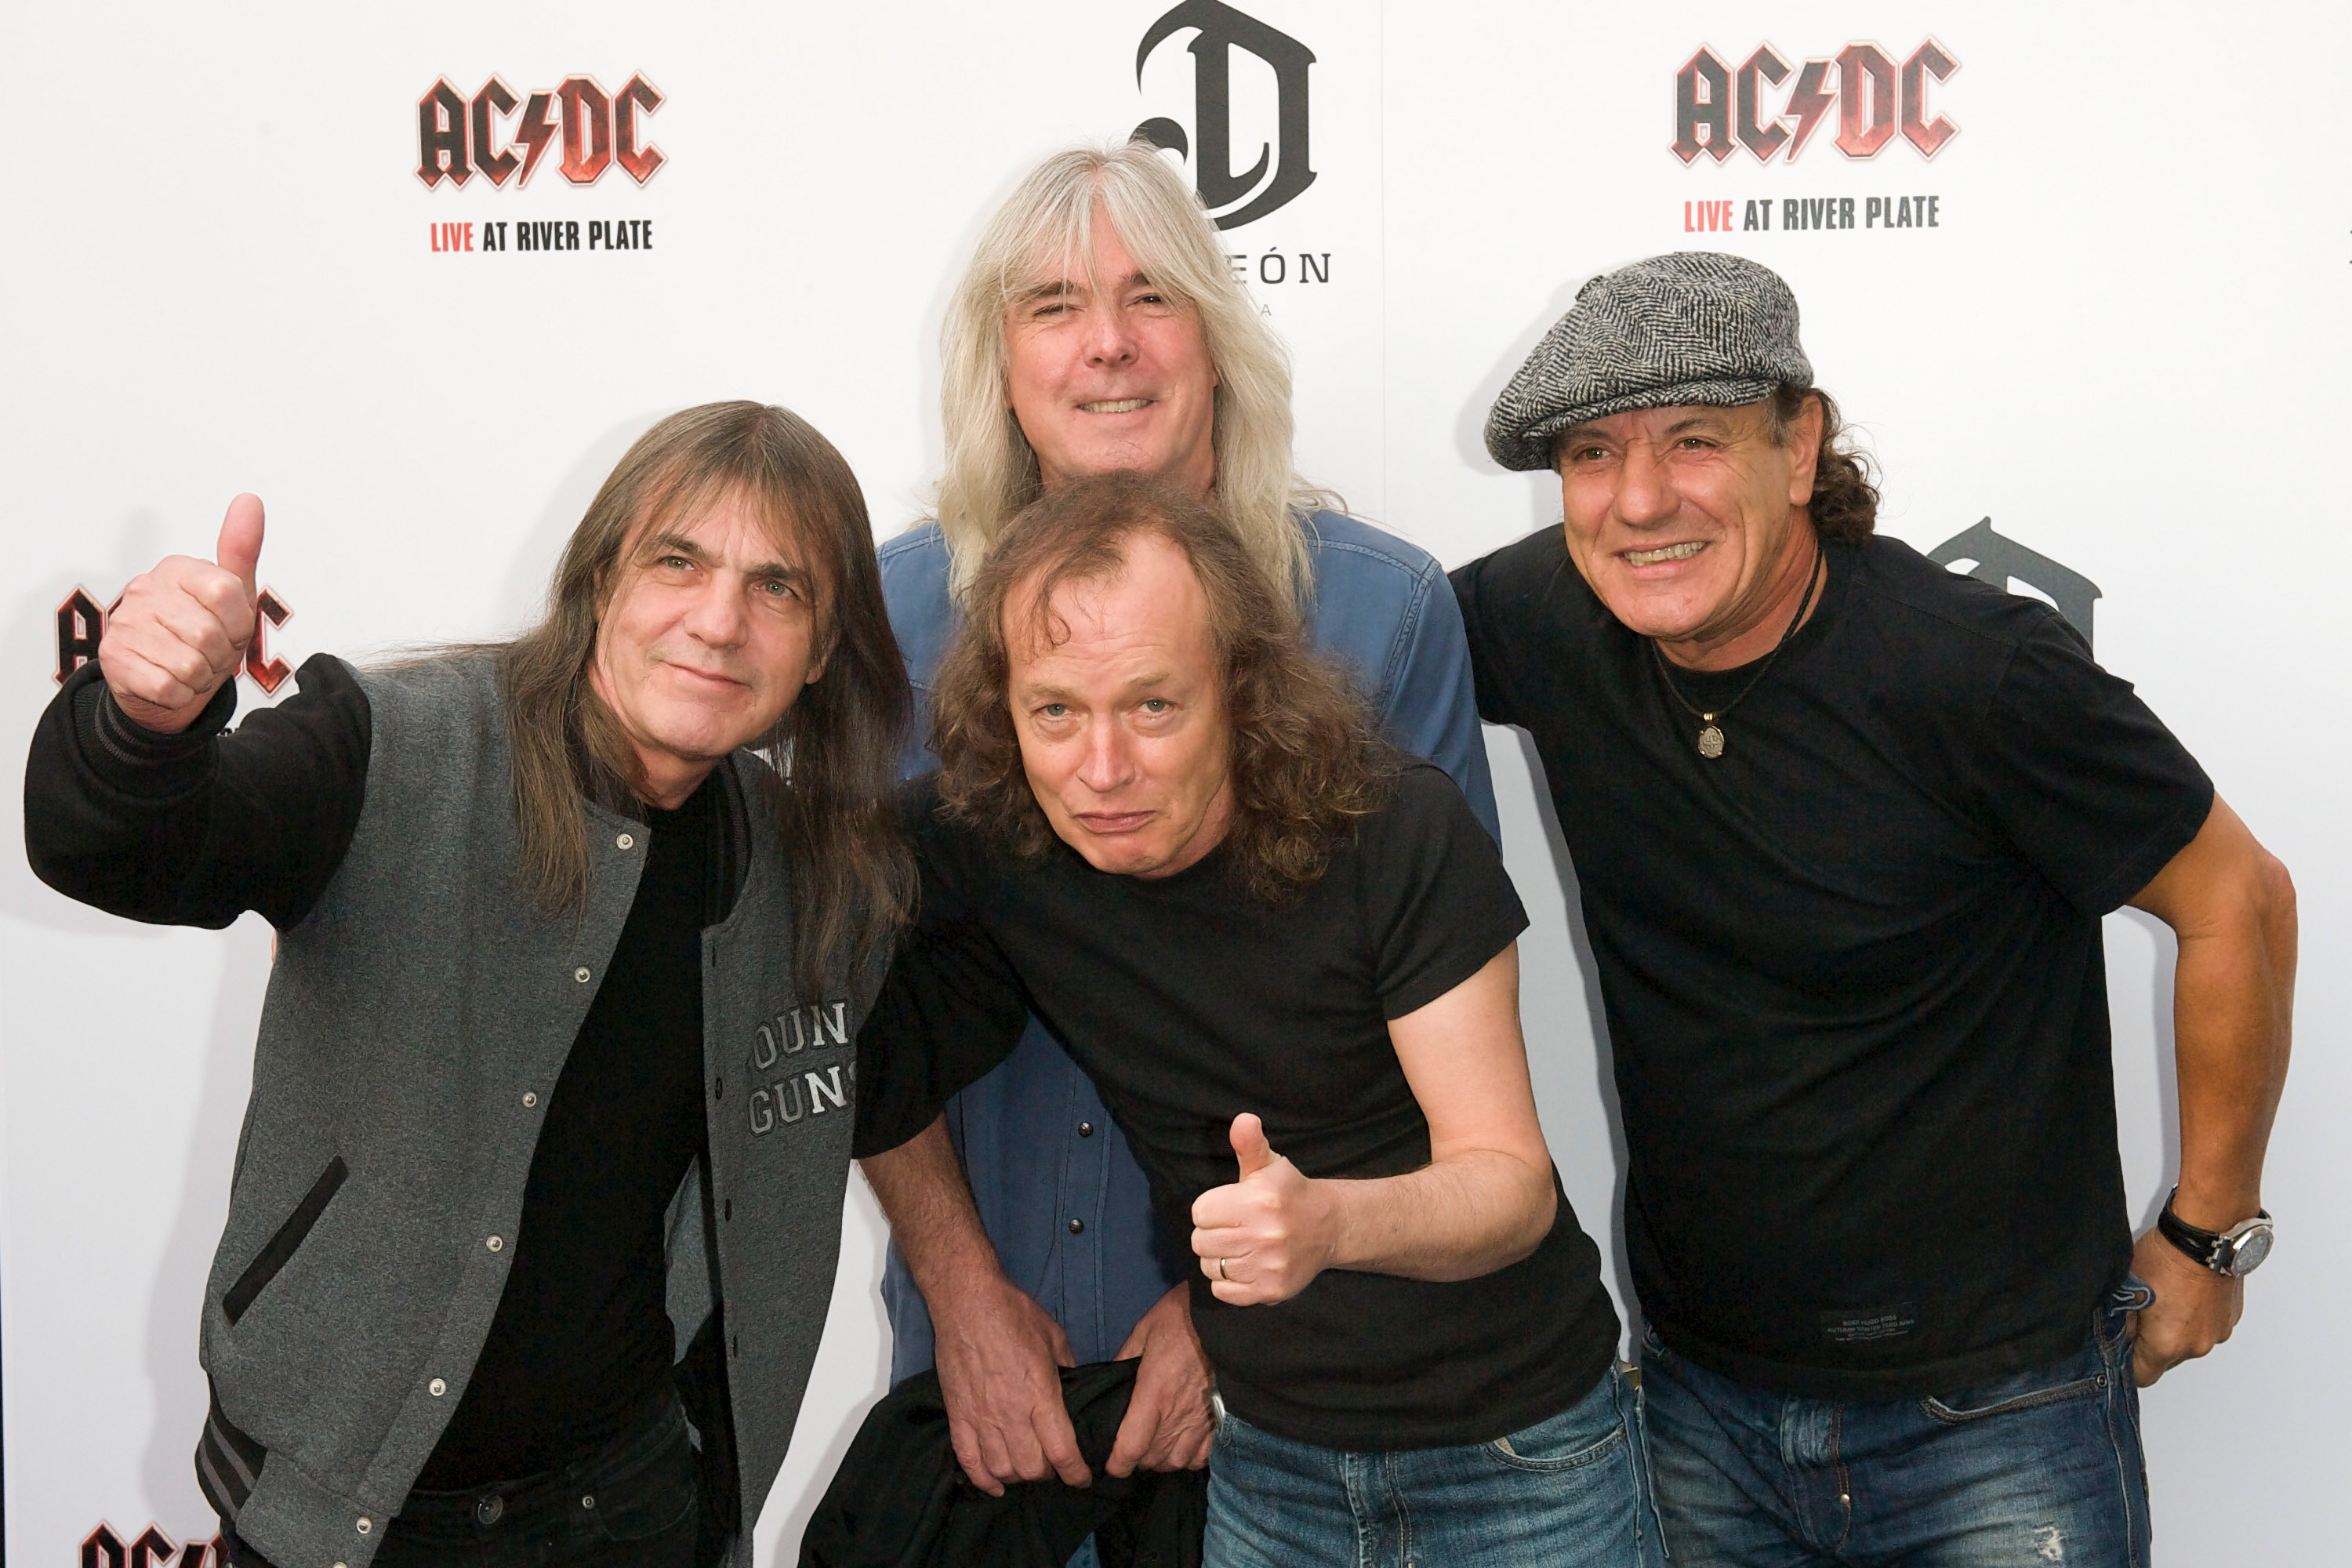 AC/DC band members, from left to right,  Malcolm Young, Cliff Williams, Angus Young and Brian Johnson attend the exclusive world premiere of their album Live at River Plate in London on May 6, 2011